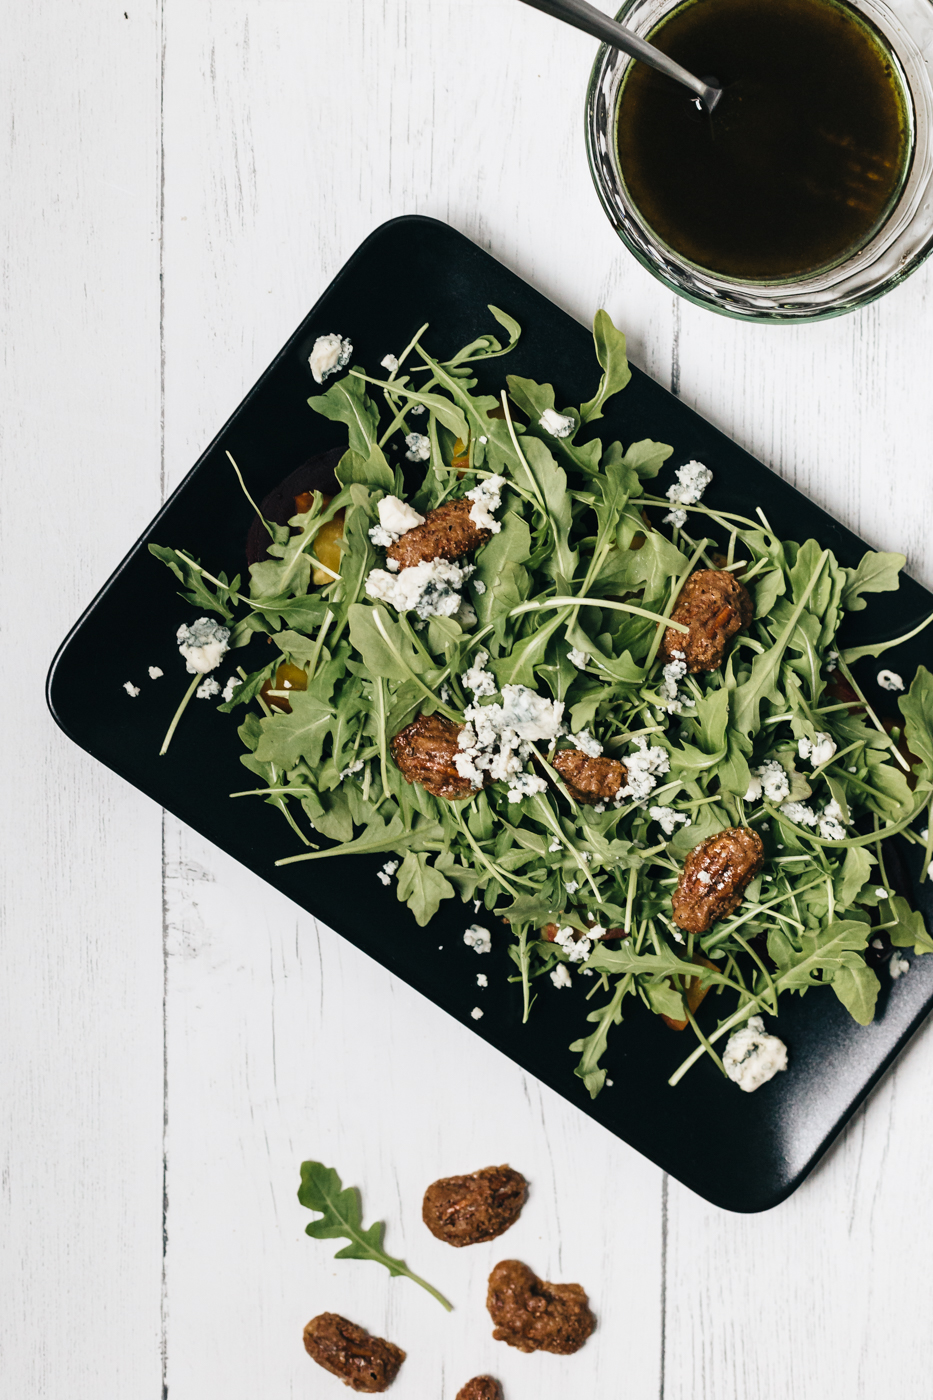 roasted beet and pear salad, summer salad recipes, kroger simple truth, the kentucky gent, southern cooking blog